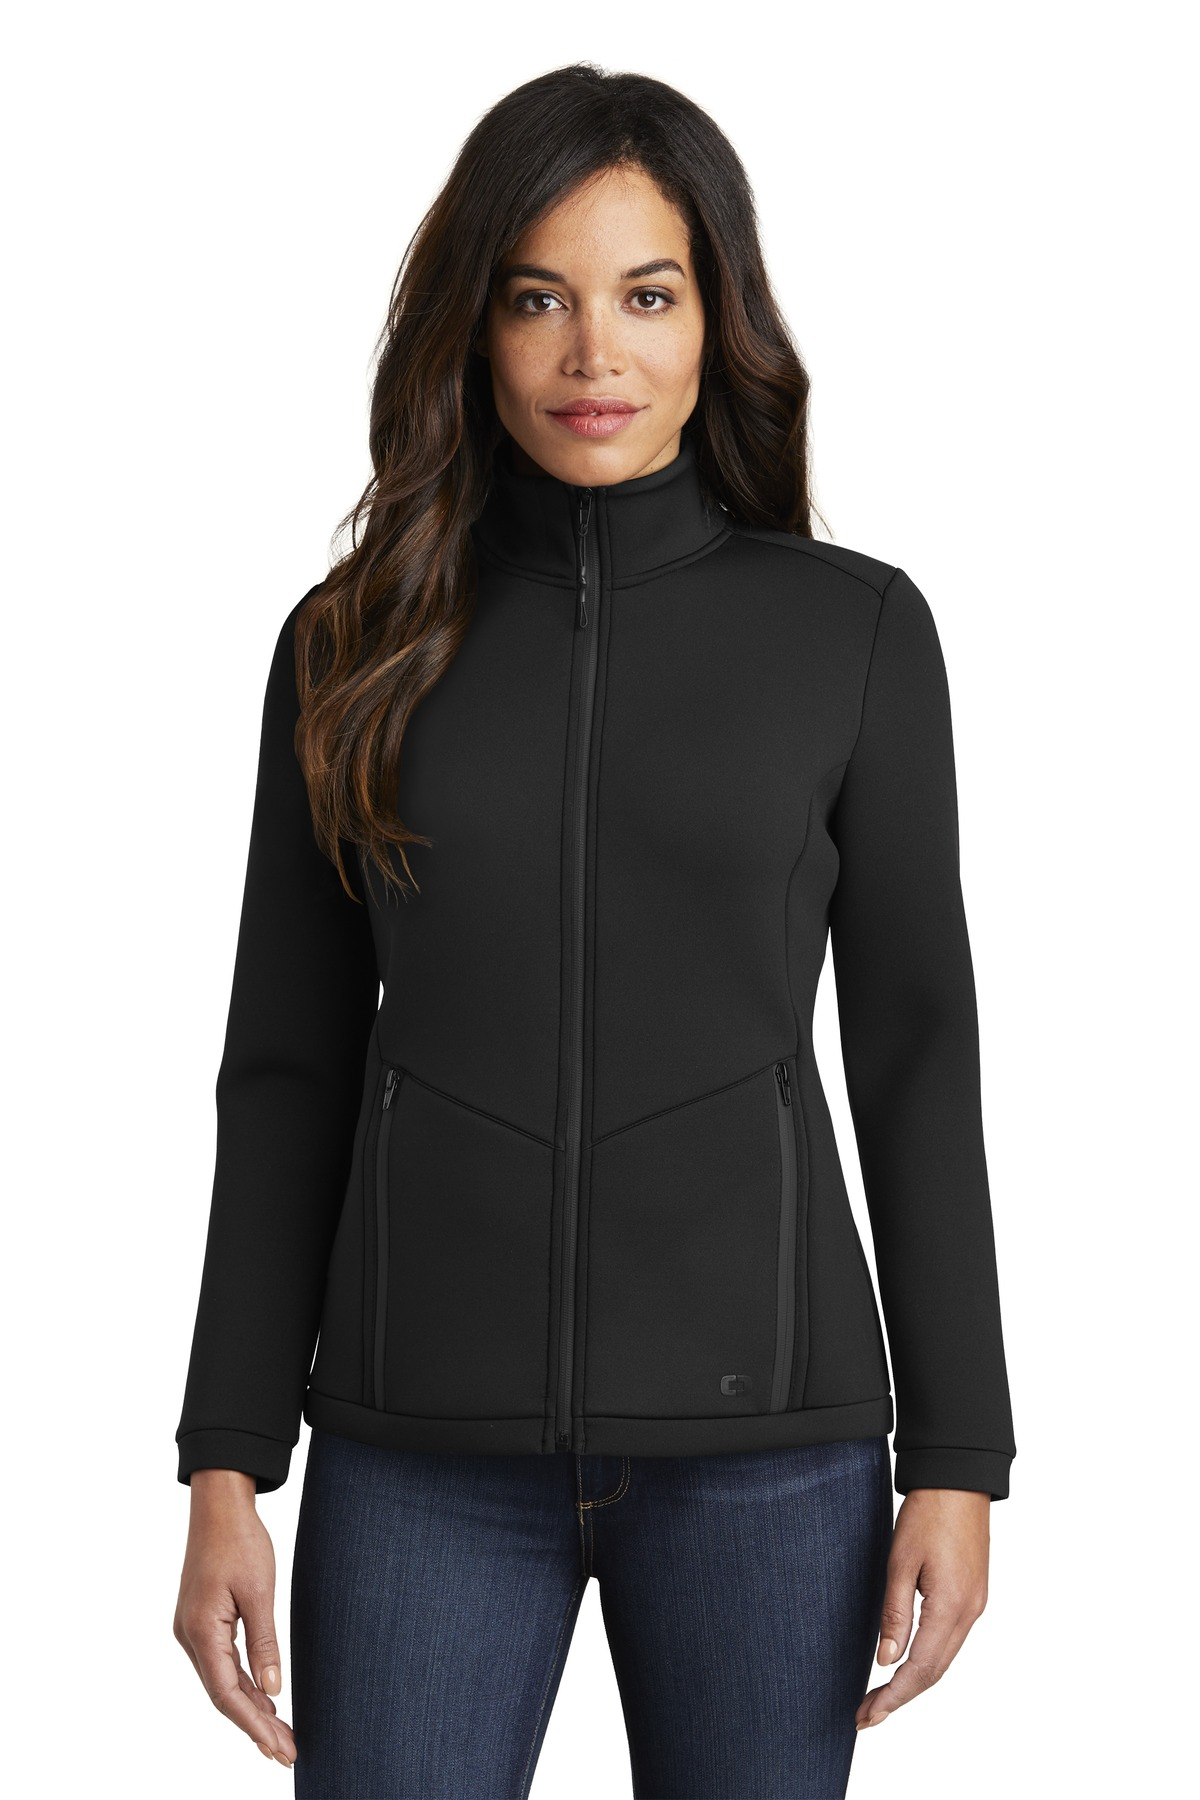 OGIO Ladies Axis Bonded Jacket. LOG724